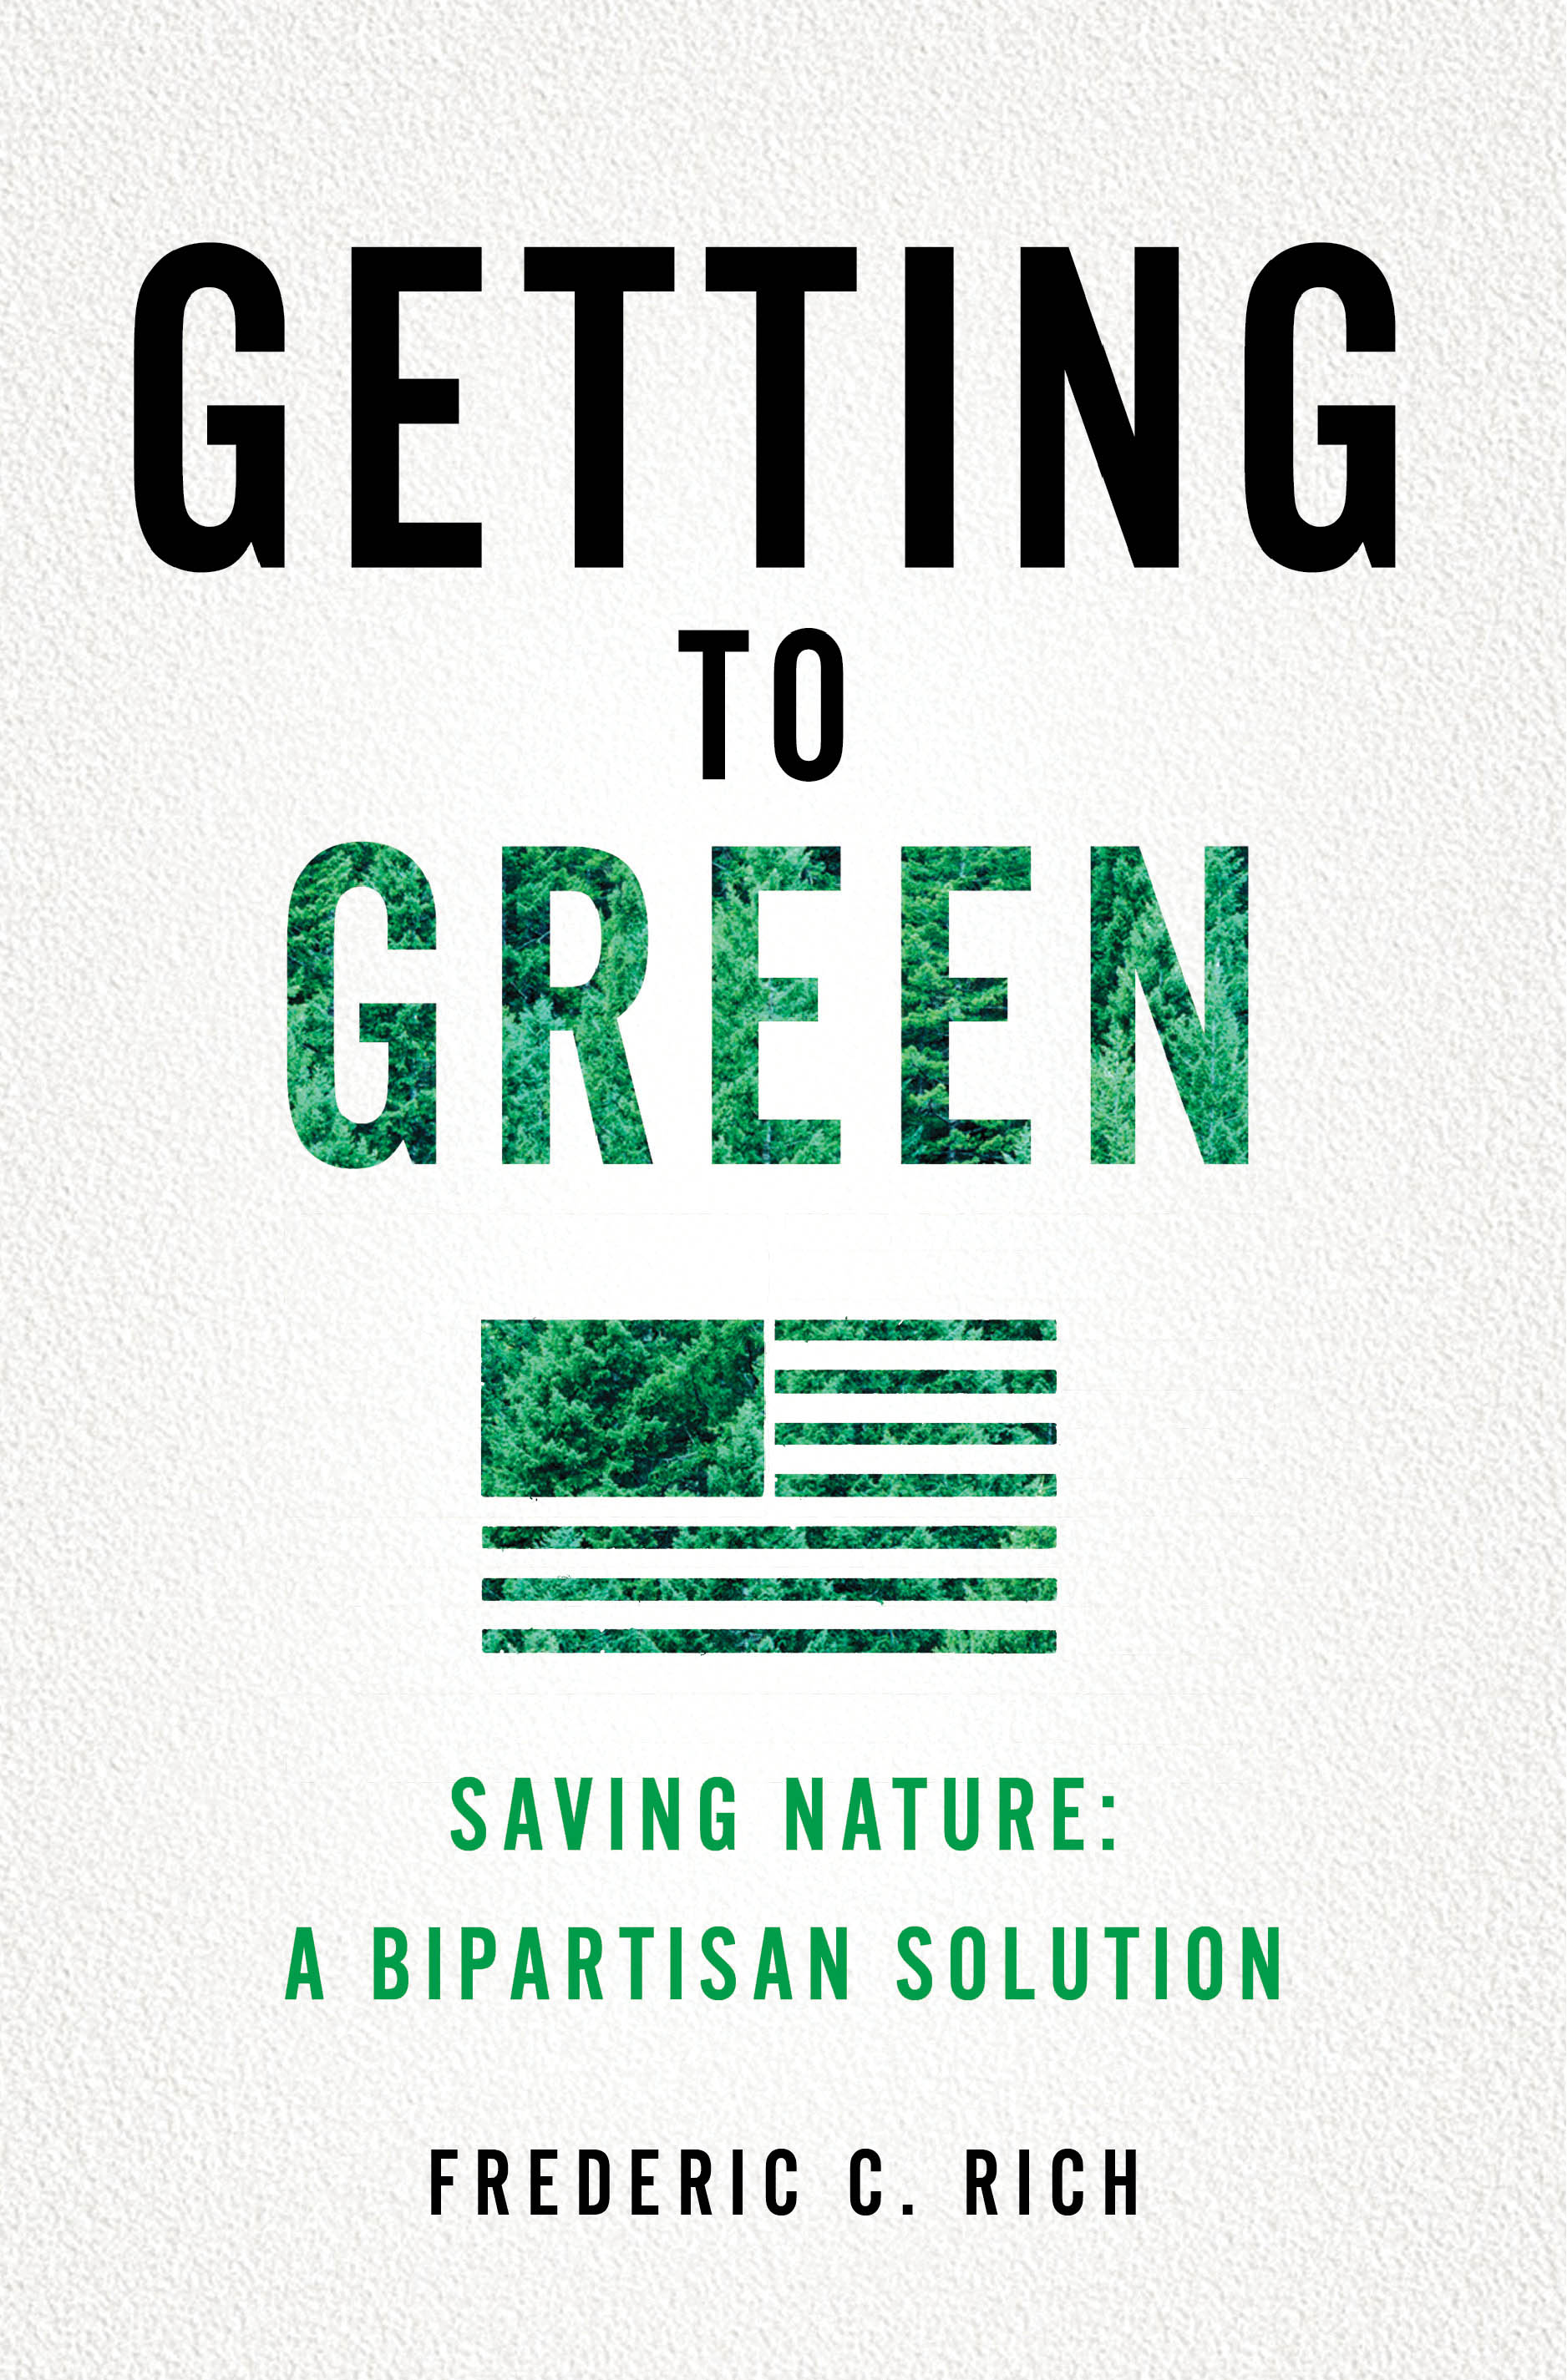 Getting to Green: Saving Nature: A Bipartisan Solution by Frederic C. Rich